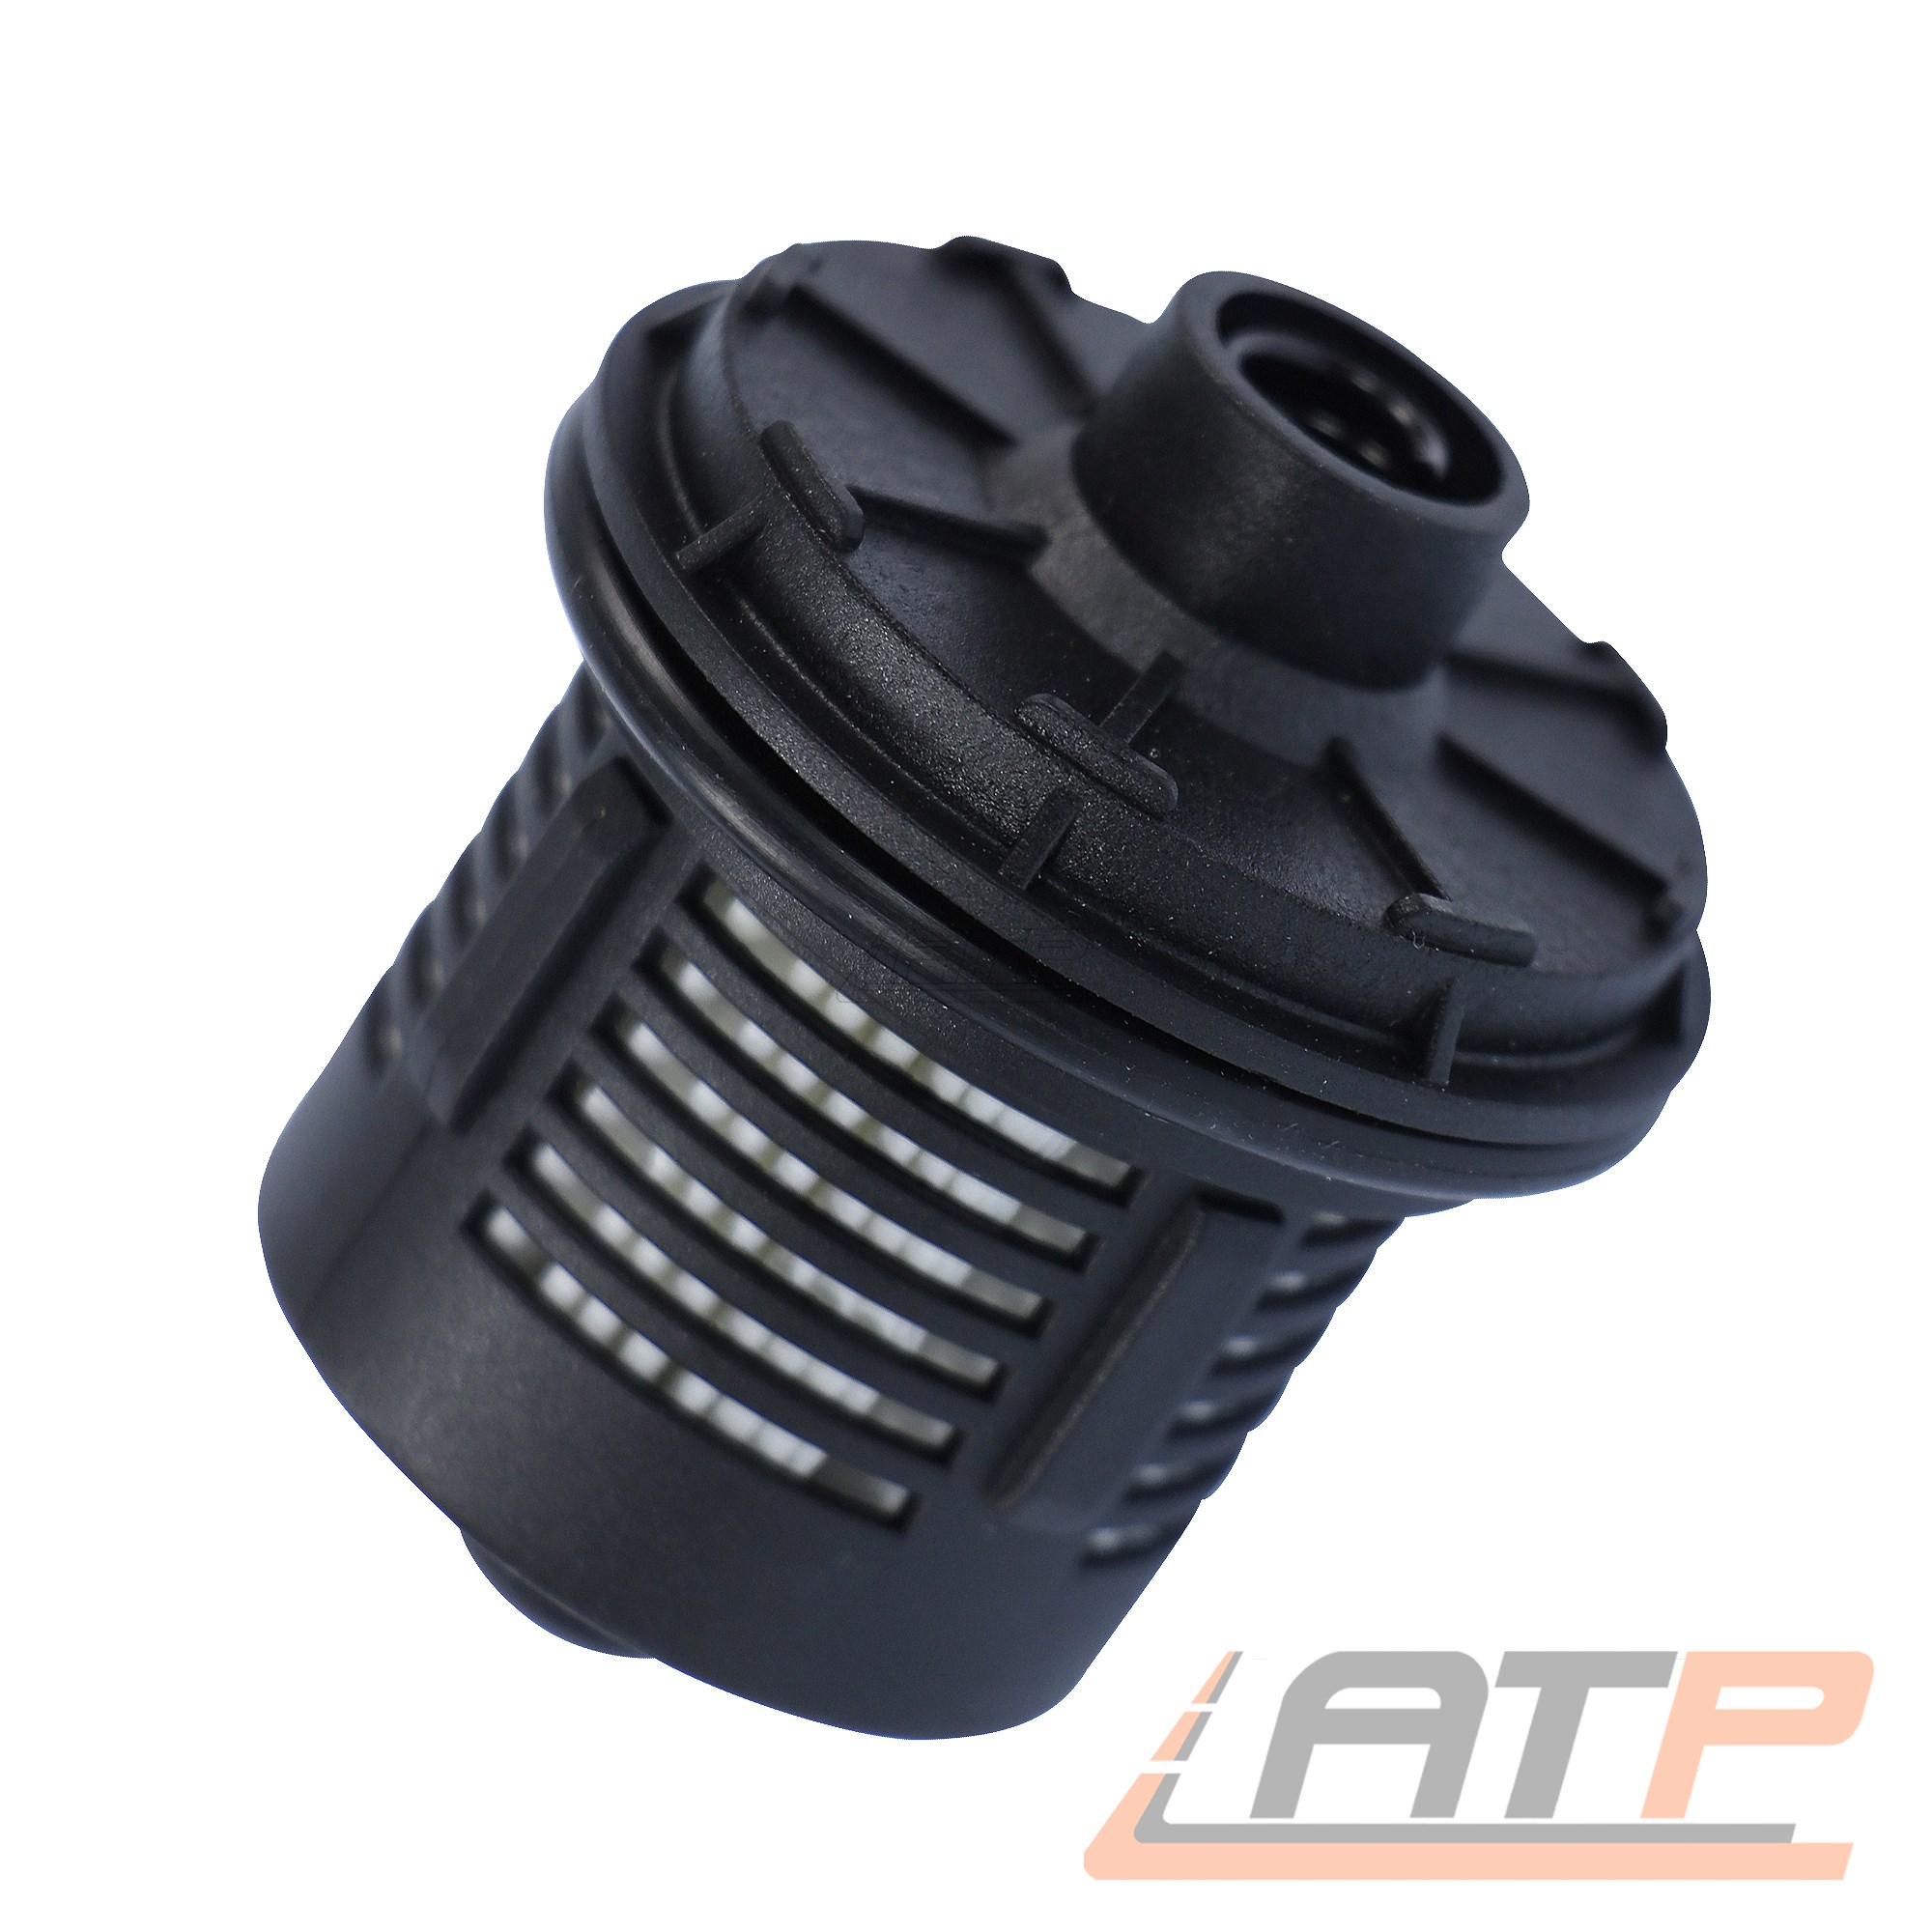 HALDEX-ÖL-FILTER-DIFFERENZIAL VW PASSAT 3C 2.0 TDI 3.2 FSI 3.6 R36 4MOTION